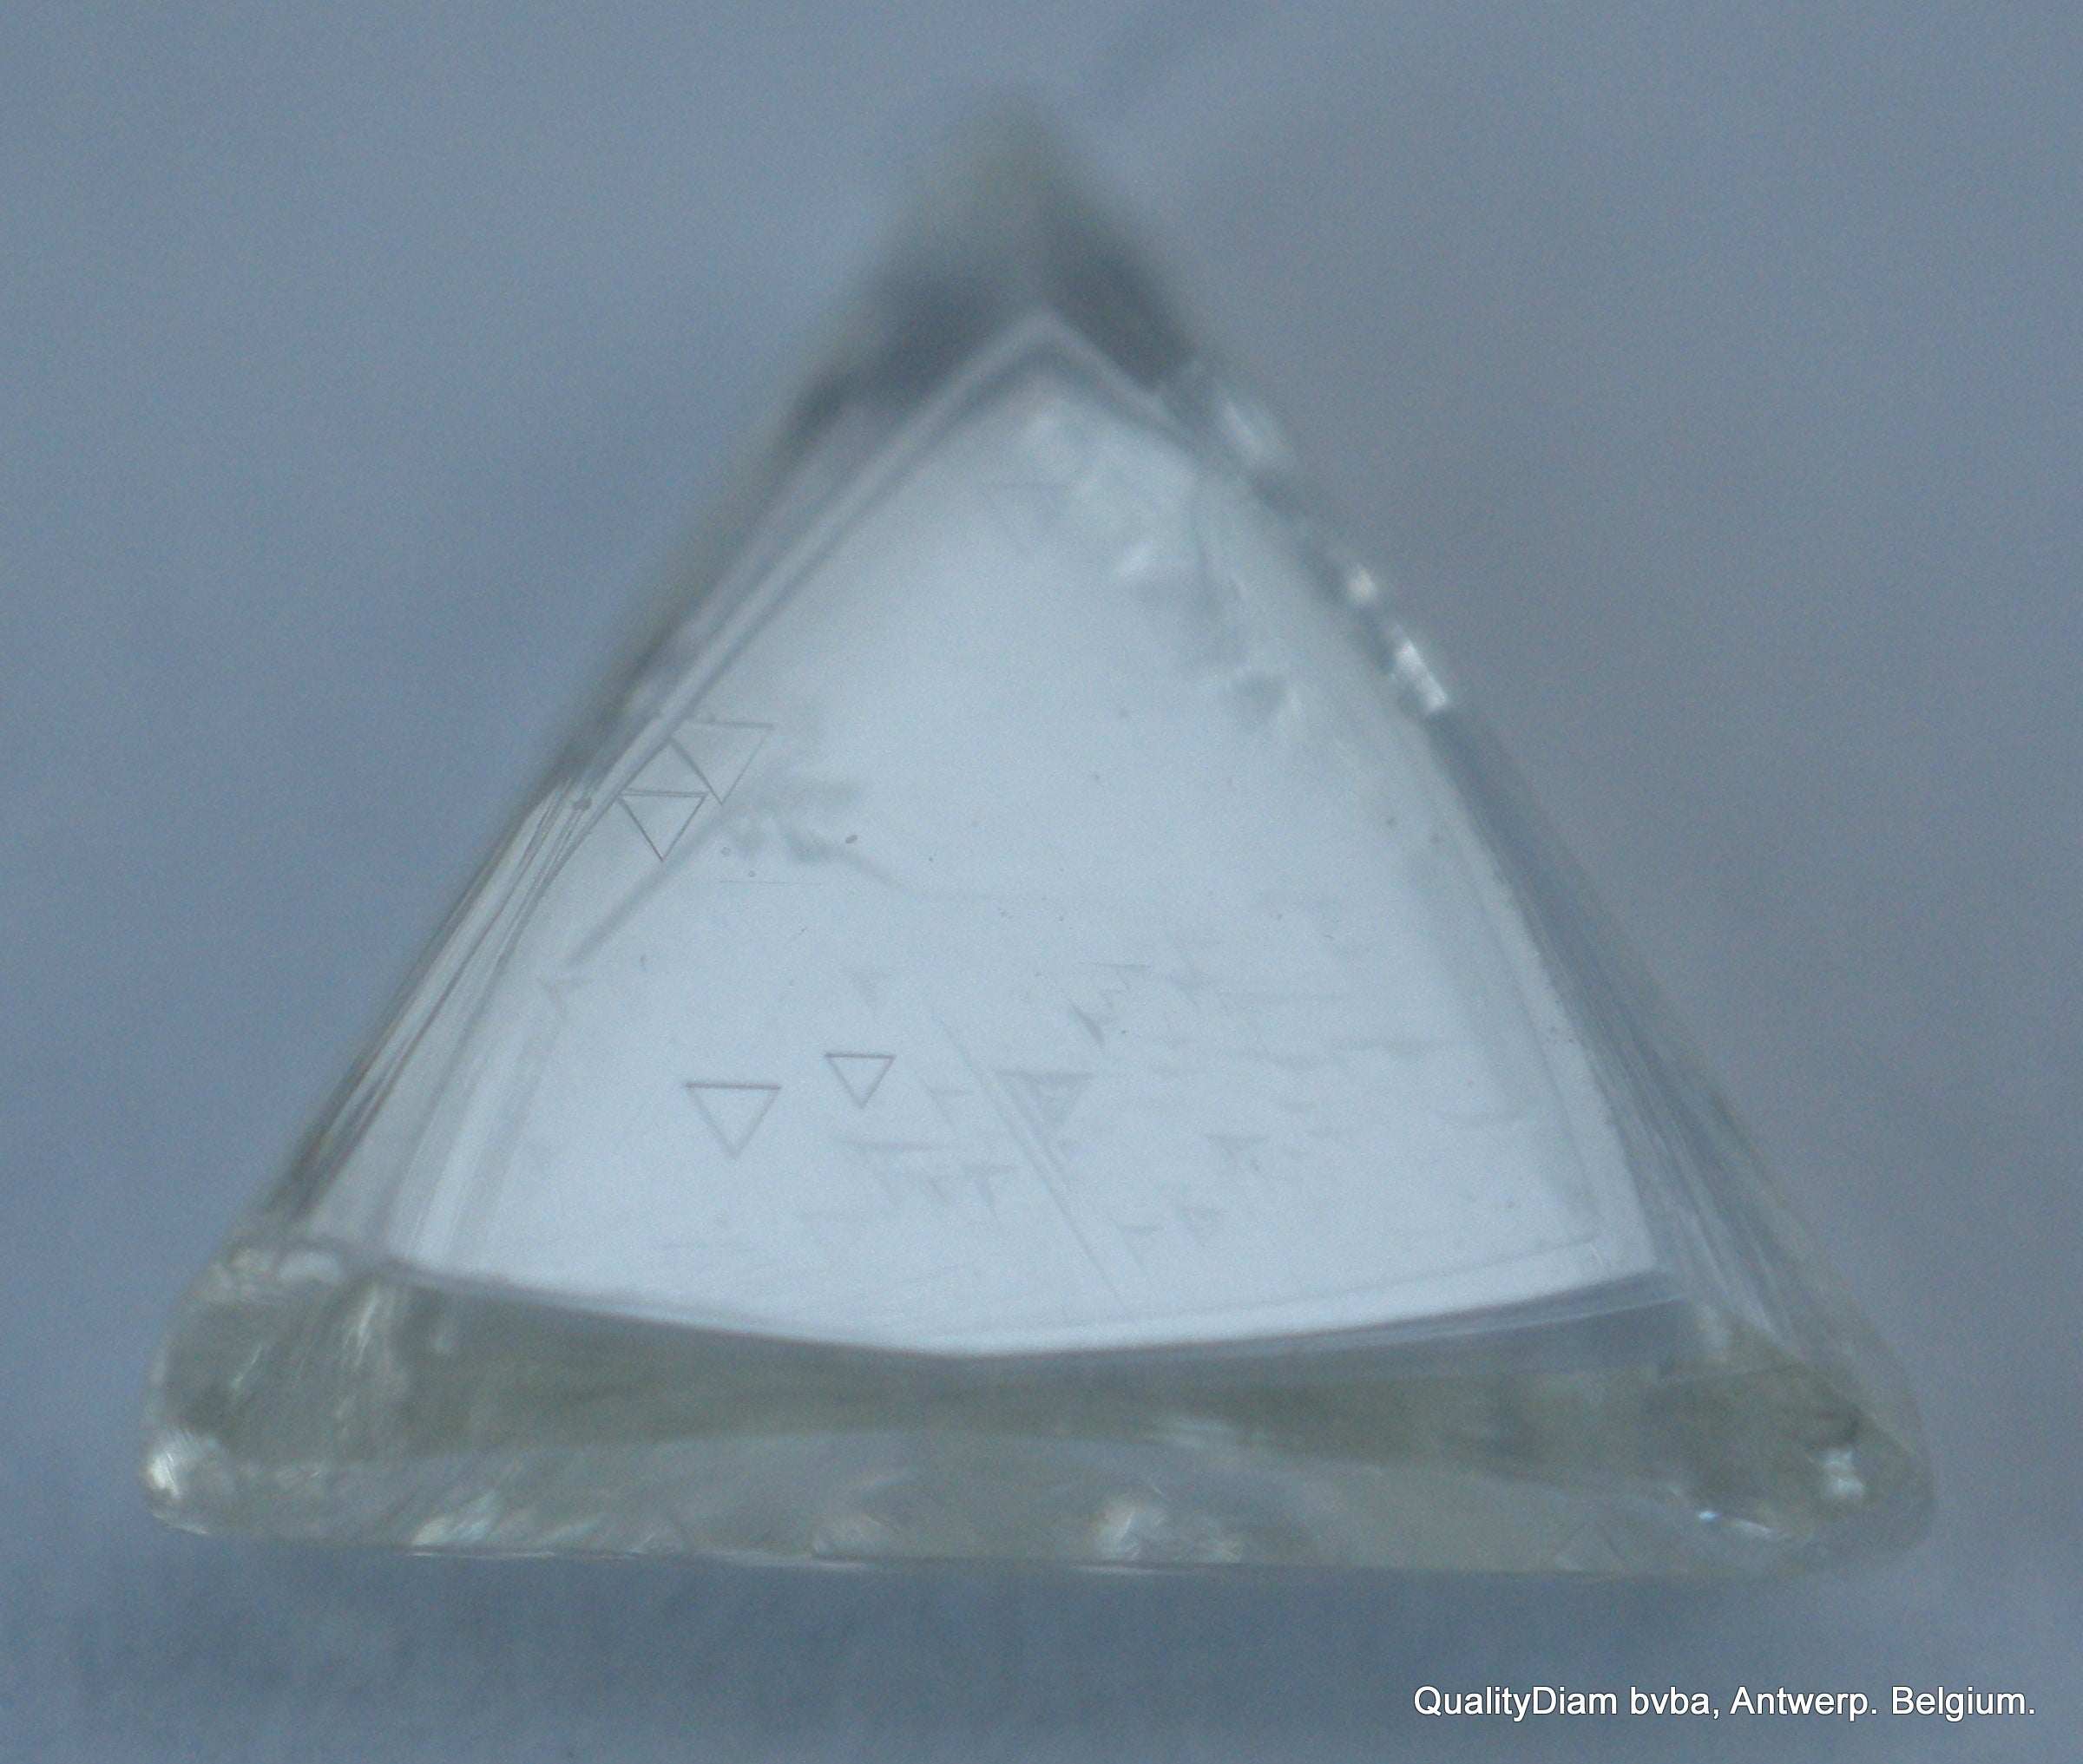 H Si2 0.48 Carat Rough Diamond Triangle Shape Uncut Natural Gem White Diamond